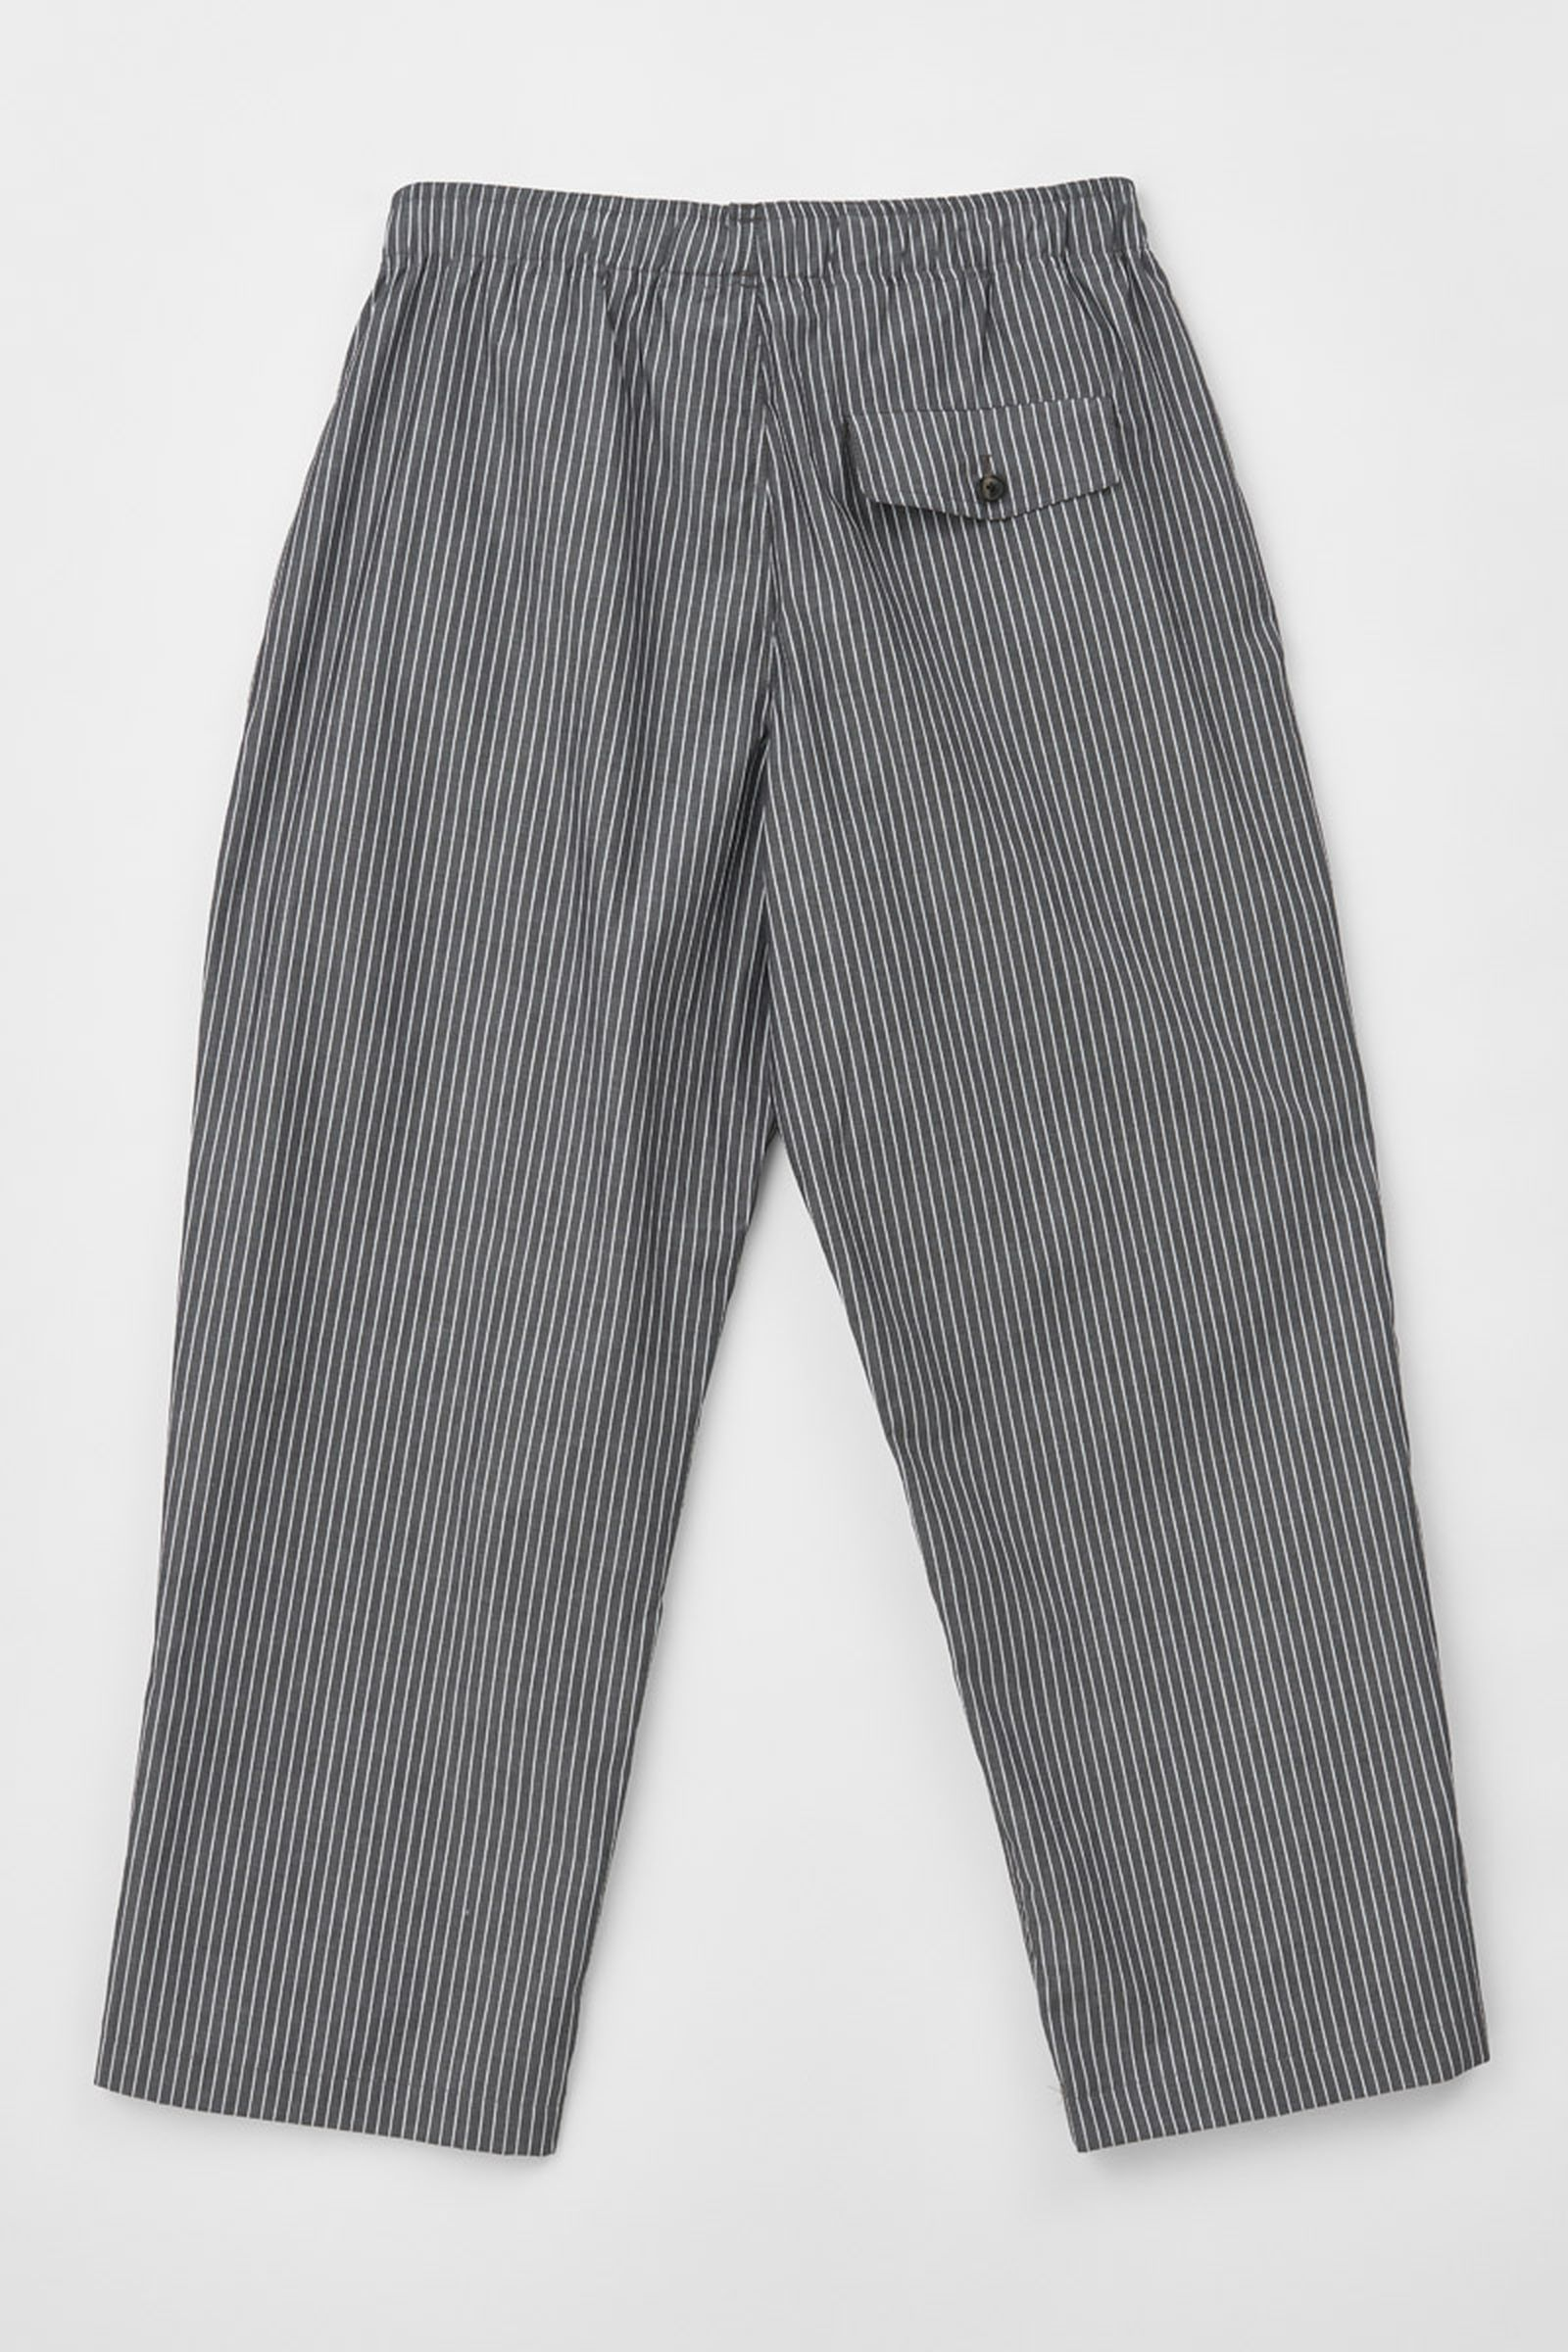 MS204R7_REDUCED TROUSERS_CHARCOAL STRIPE_BACK